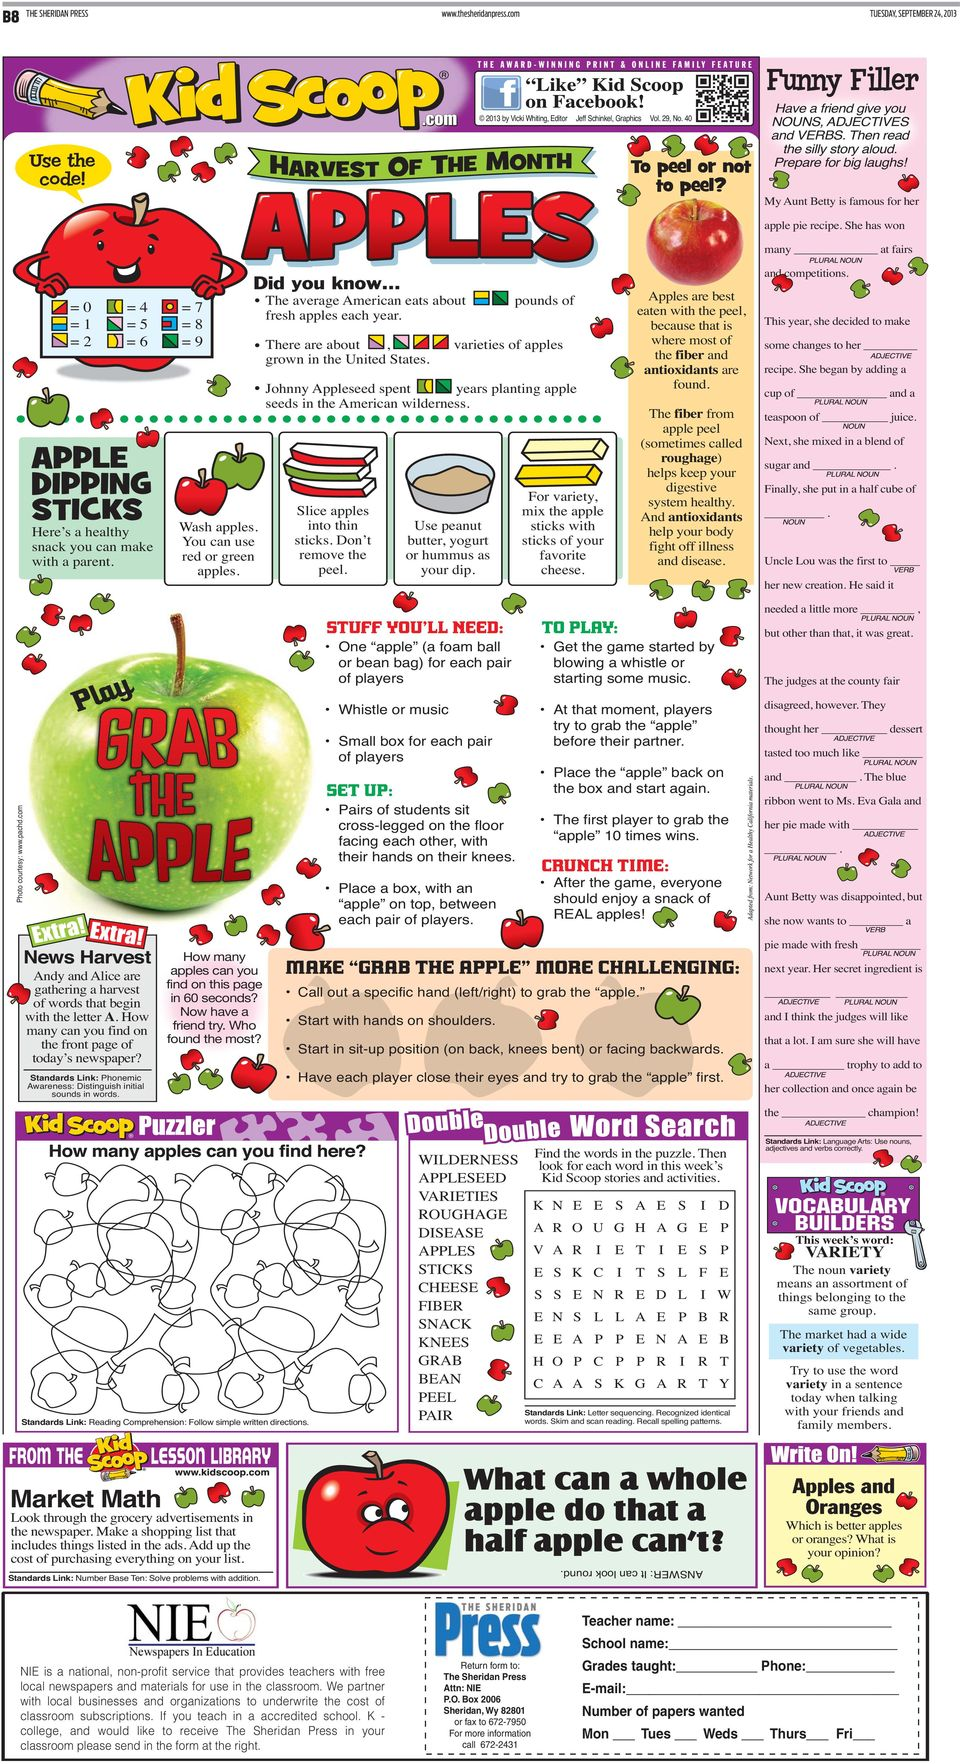 = 0 = 1 = 2 = 4 = 5 = 6 Here s a healthy snack you can make with a parent. = 7 = 8 = 9 Wash apples. You can use red or green apples. The average merican eats about fresh apples each year.